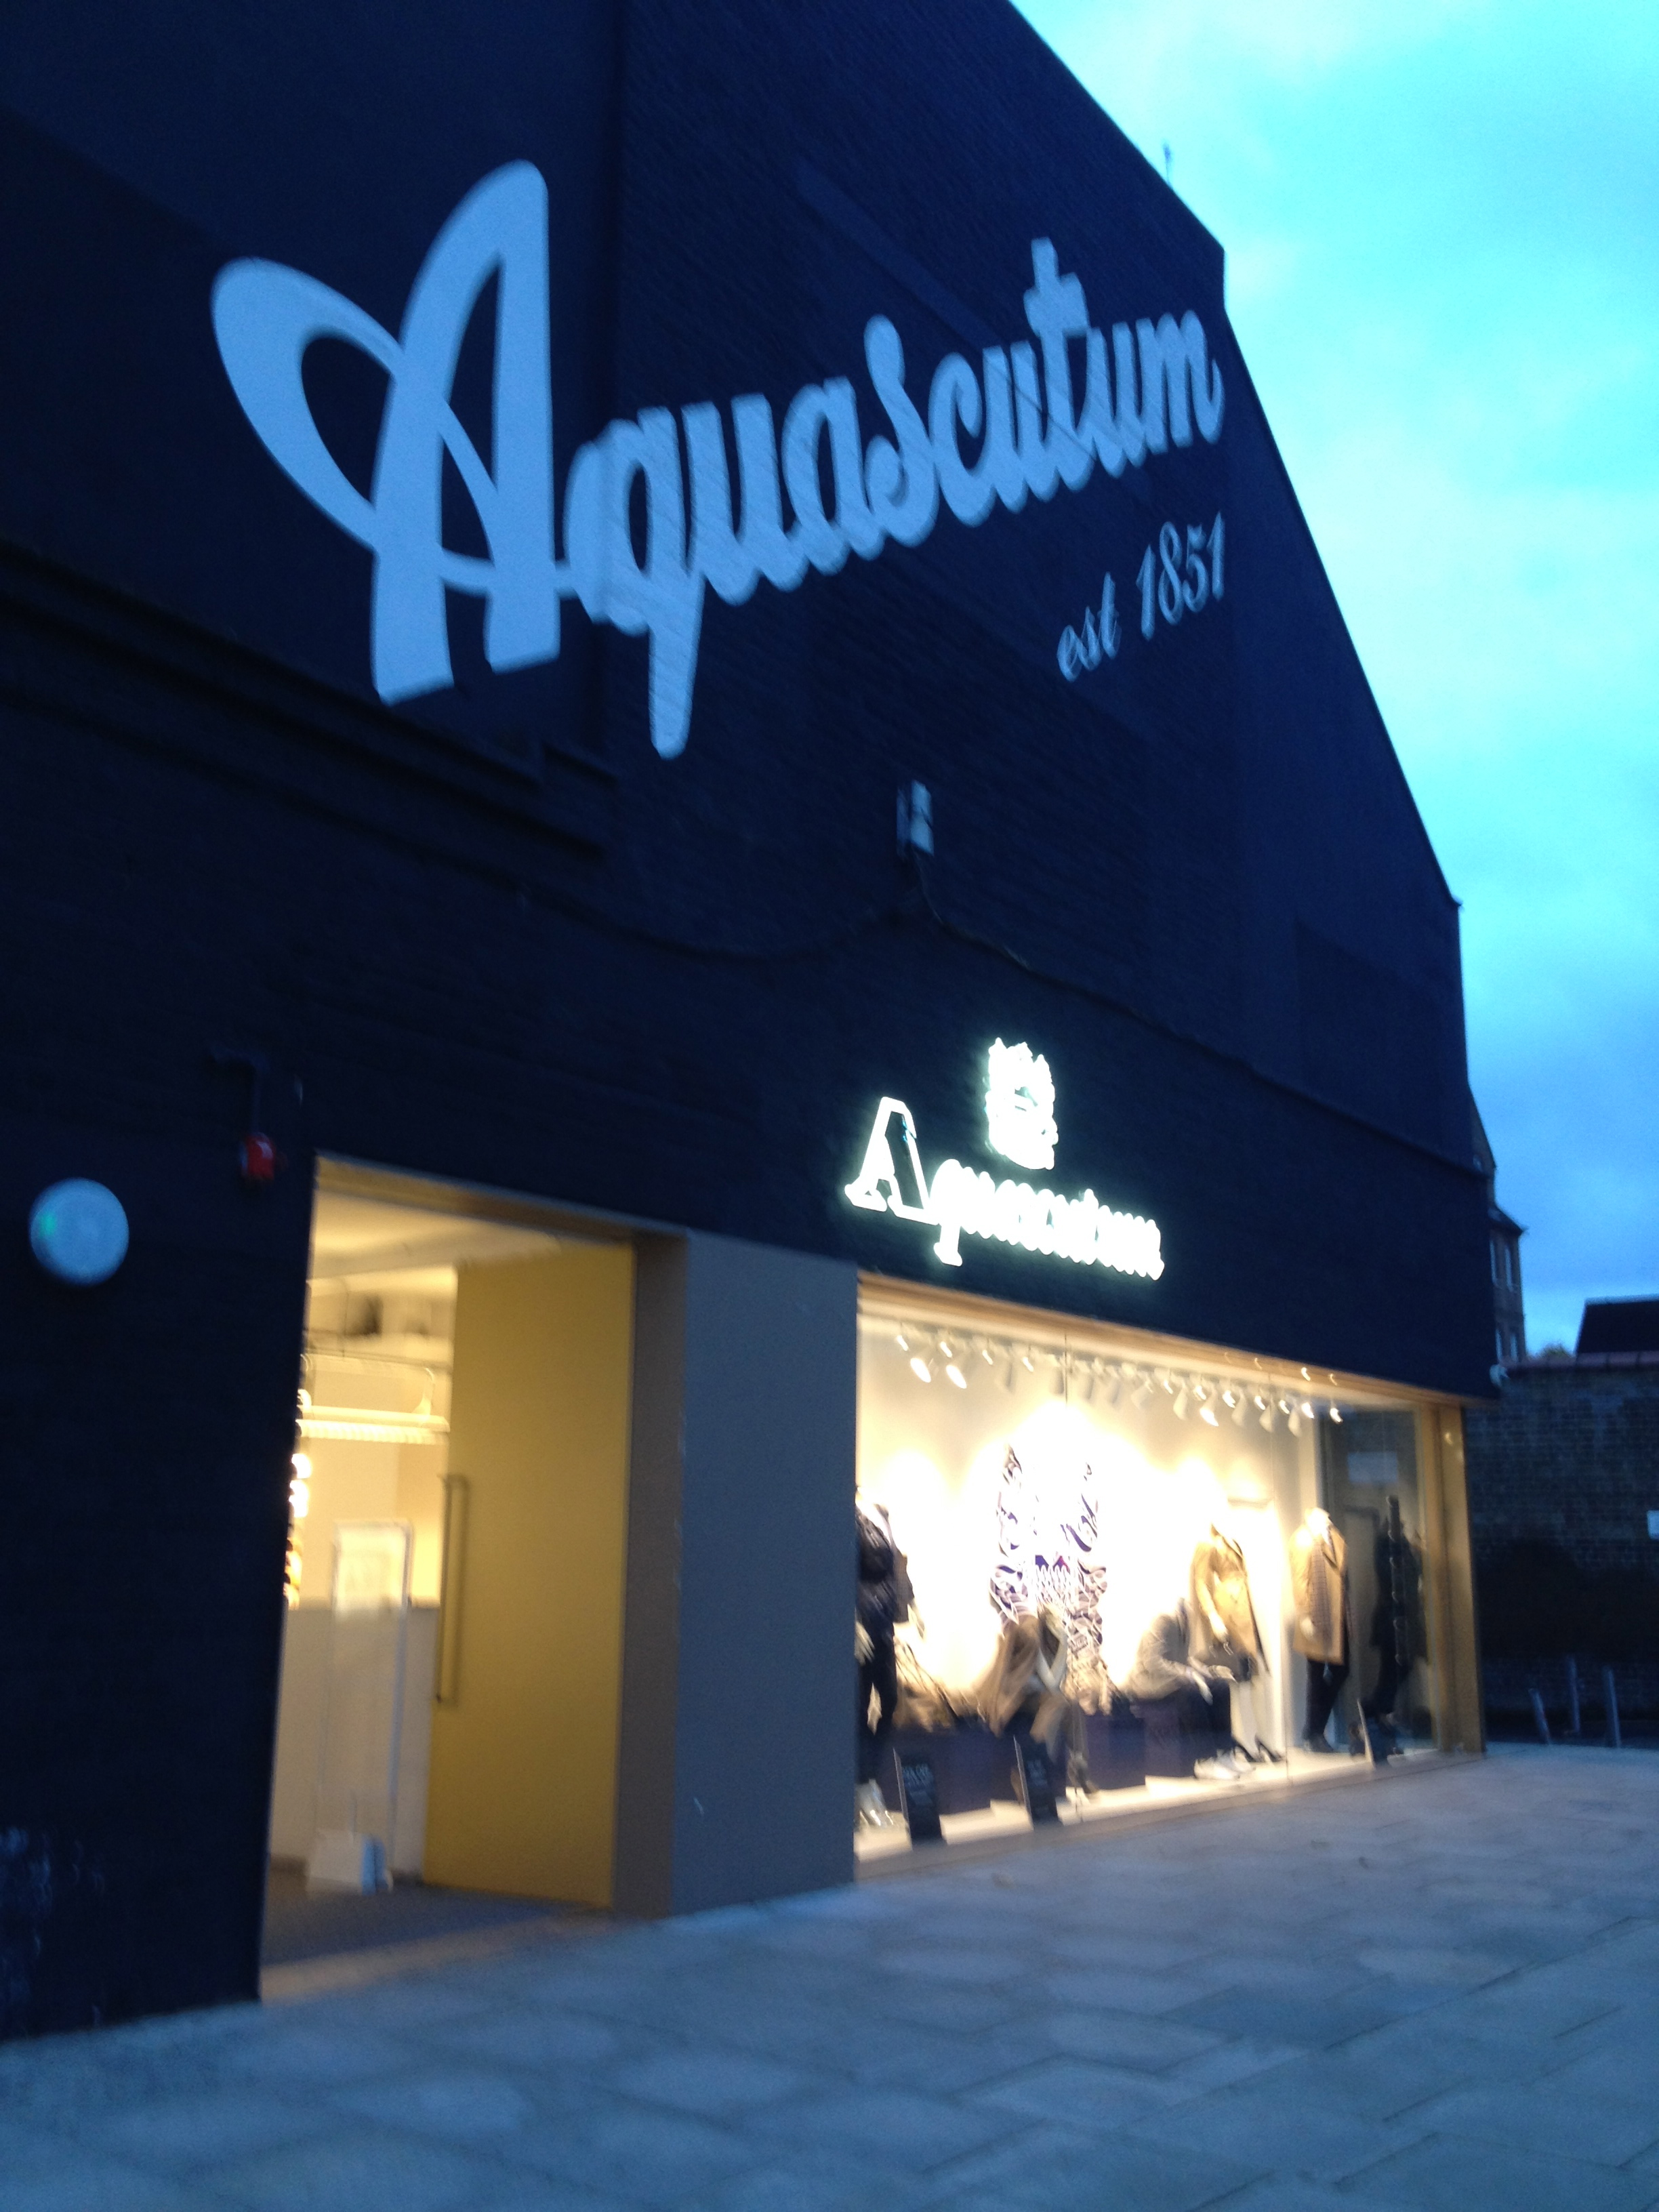 burbery outlet zp4i  Also you can find Aquascutum and Pringle of Scotland OUTLET